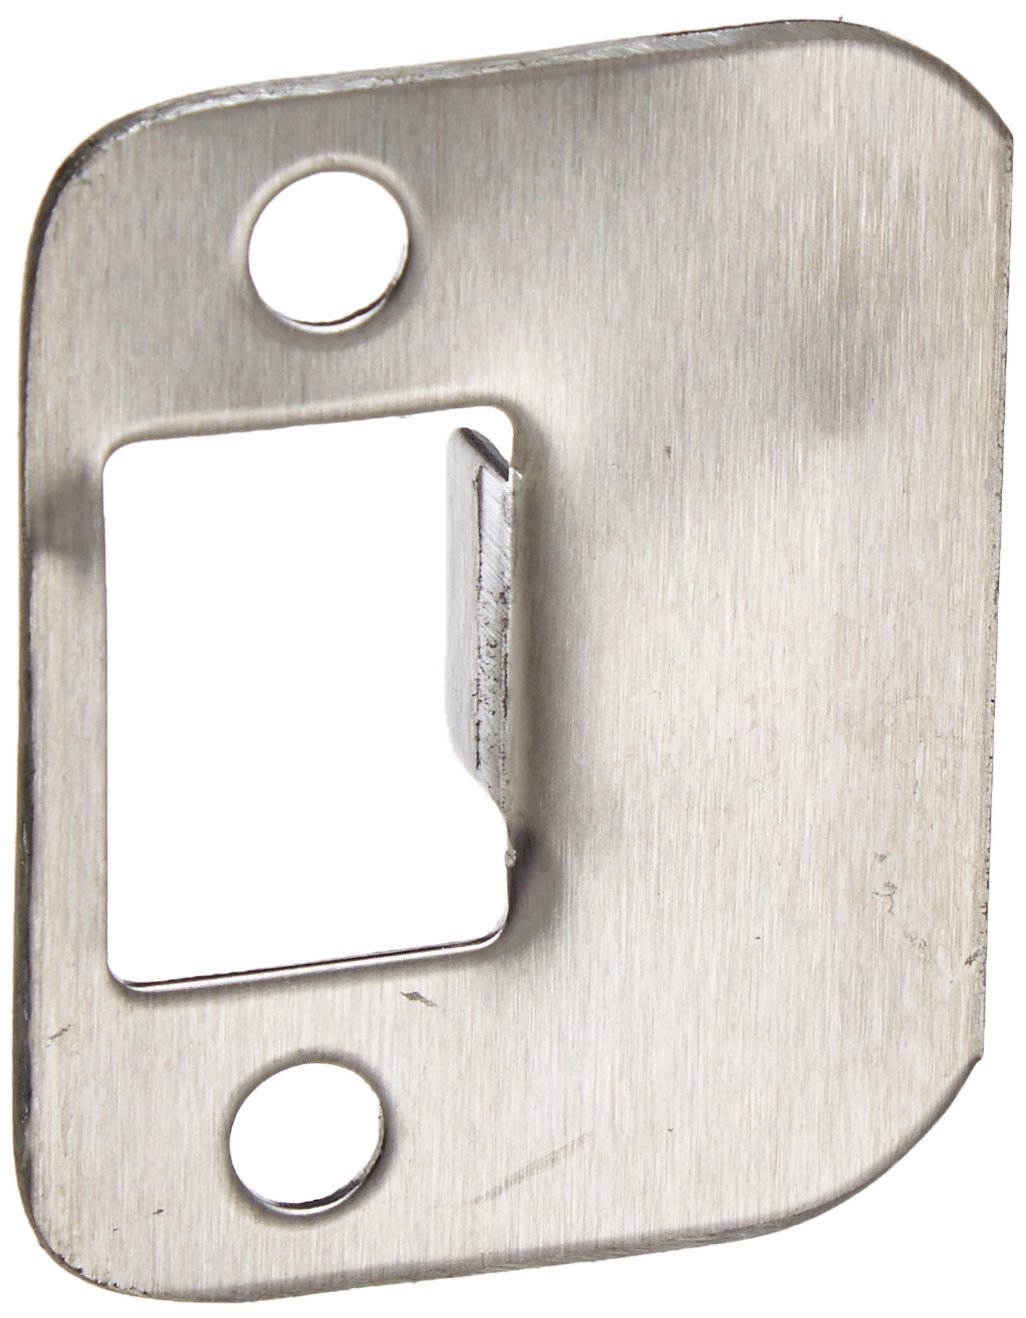 Don-Jo ST 214 RC 18 Gauge Stainless Steel Replacement Strike with Radius Corner Pack of 10 Satin Stainless Steel Finish 1-1//4 Width x 2-1//4 Height